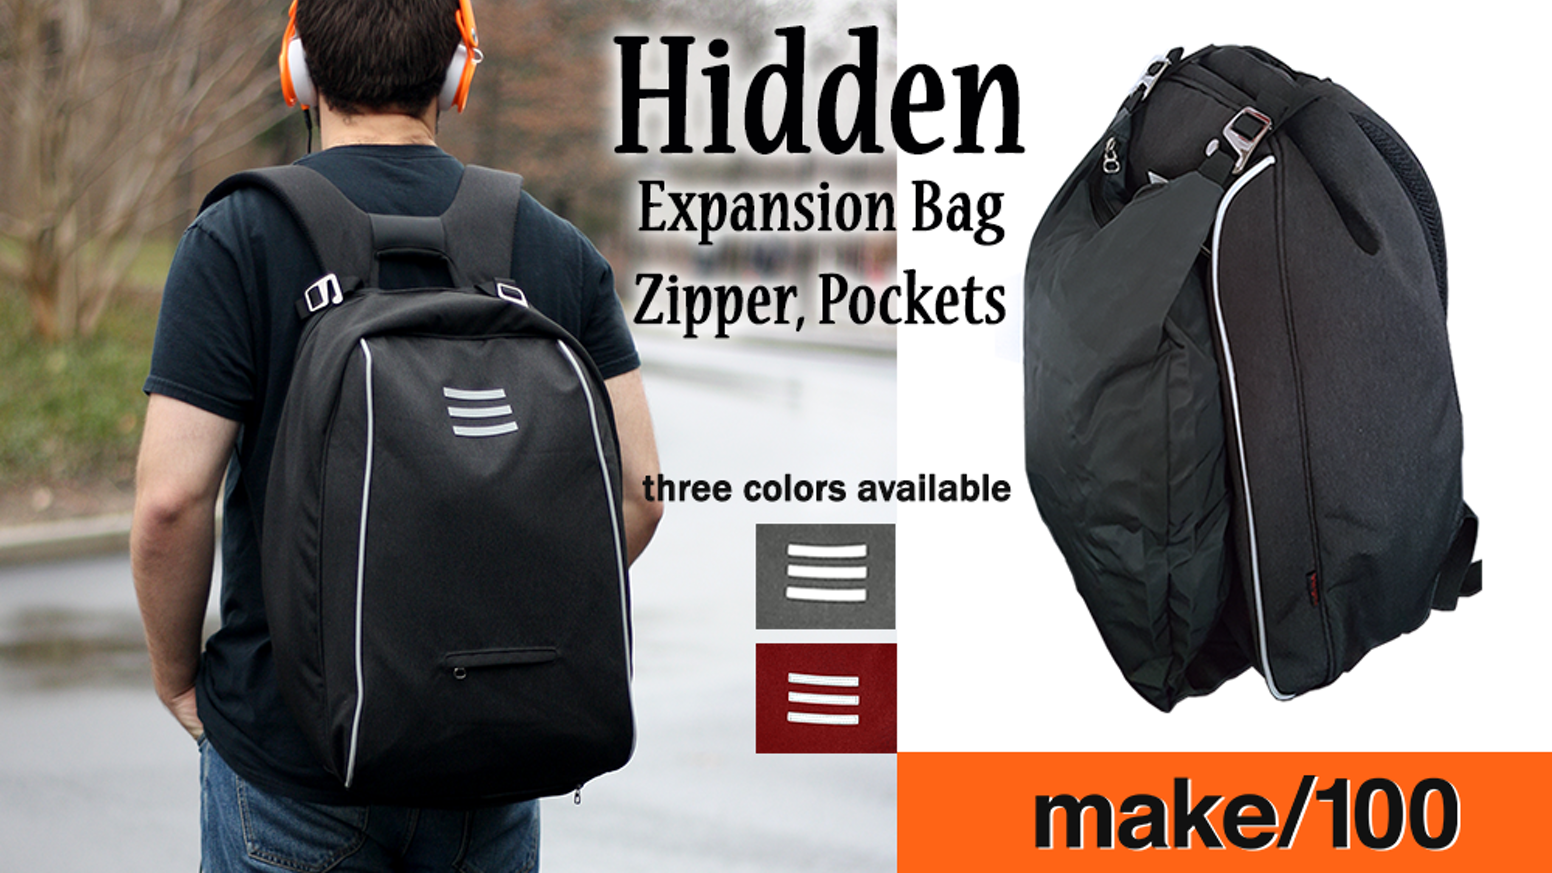 Anti-theft waterproof carry all for urban warriors. Hidden zipper and storage throughout. Pull out bag for extra room when needed.